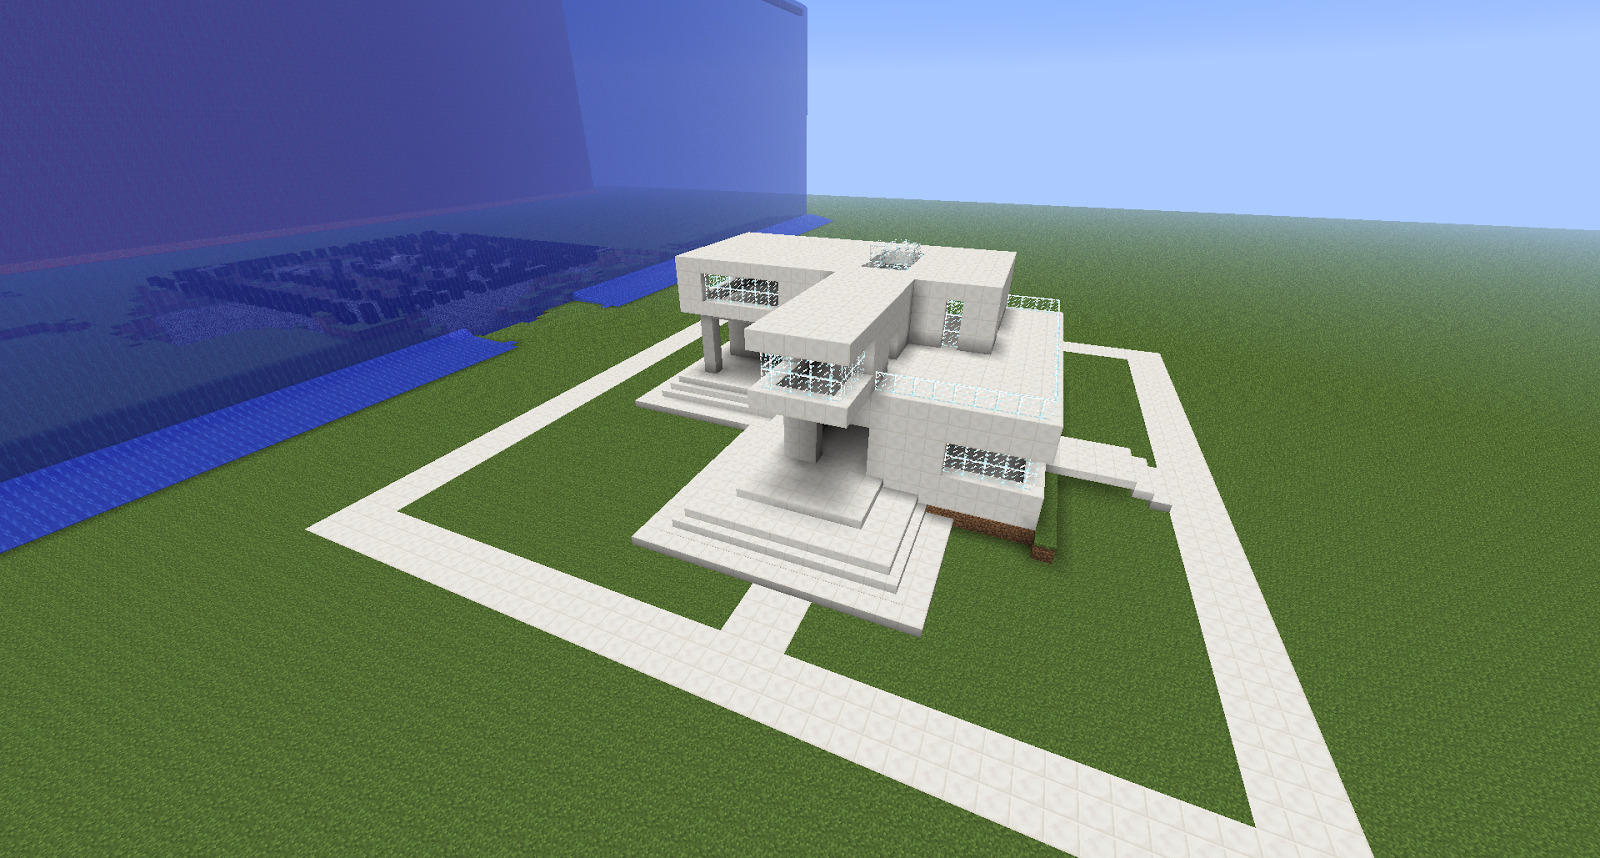 Arquitectura en minecraft for Casas modernas minecraft faciles